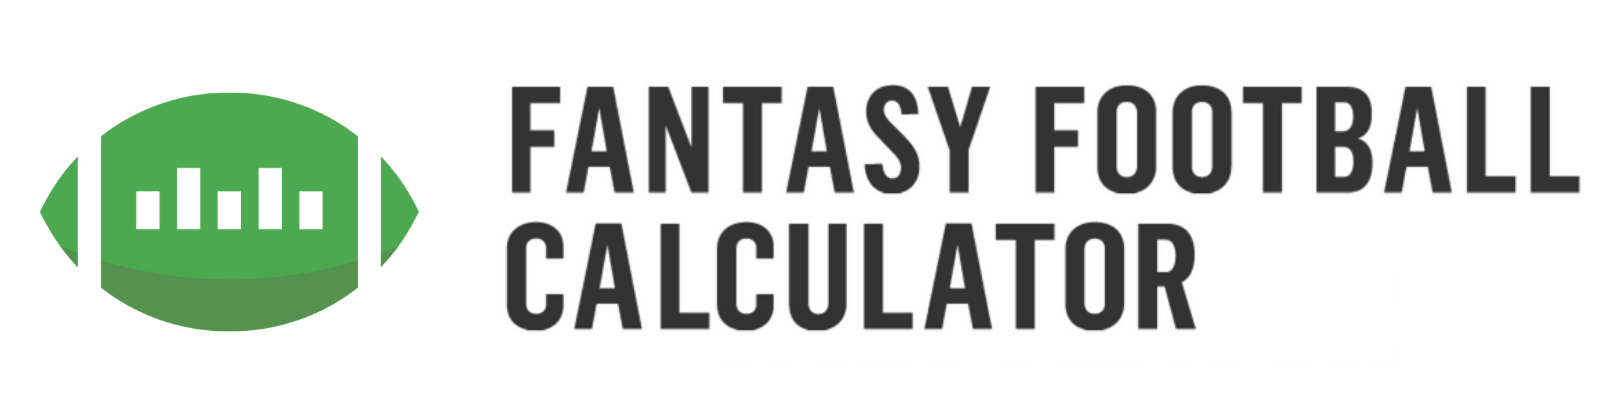 Average Draft Position (ADP) - Fantasy Football 2019